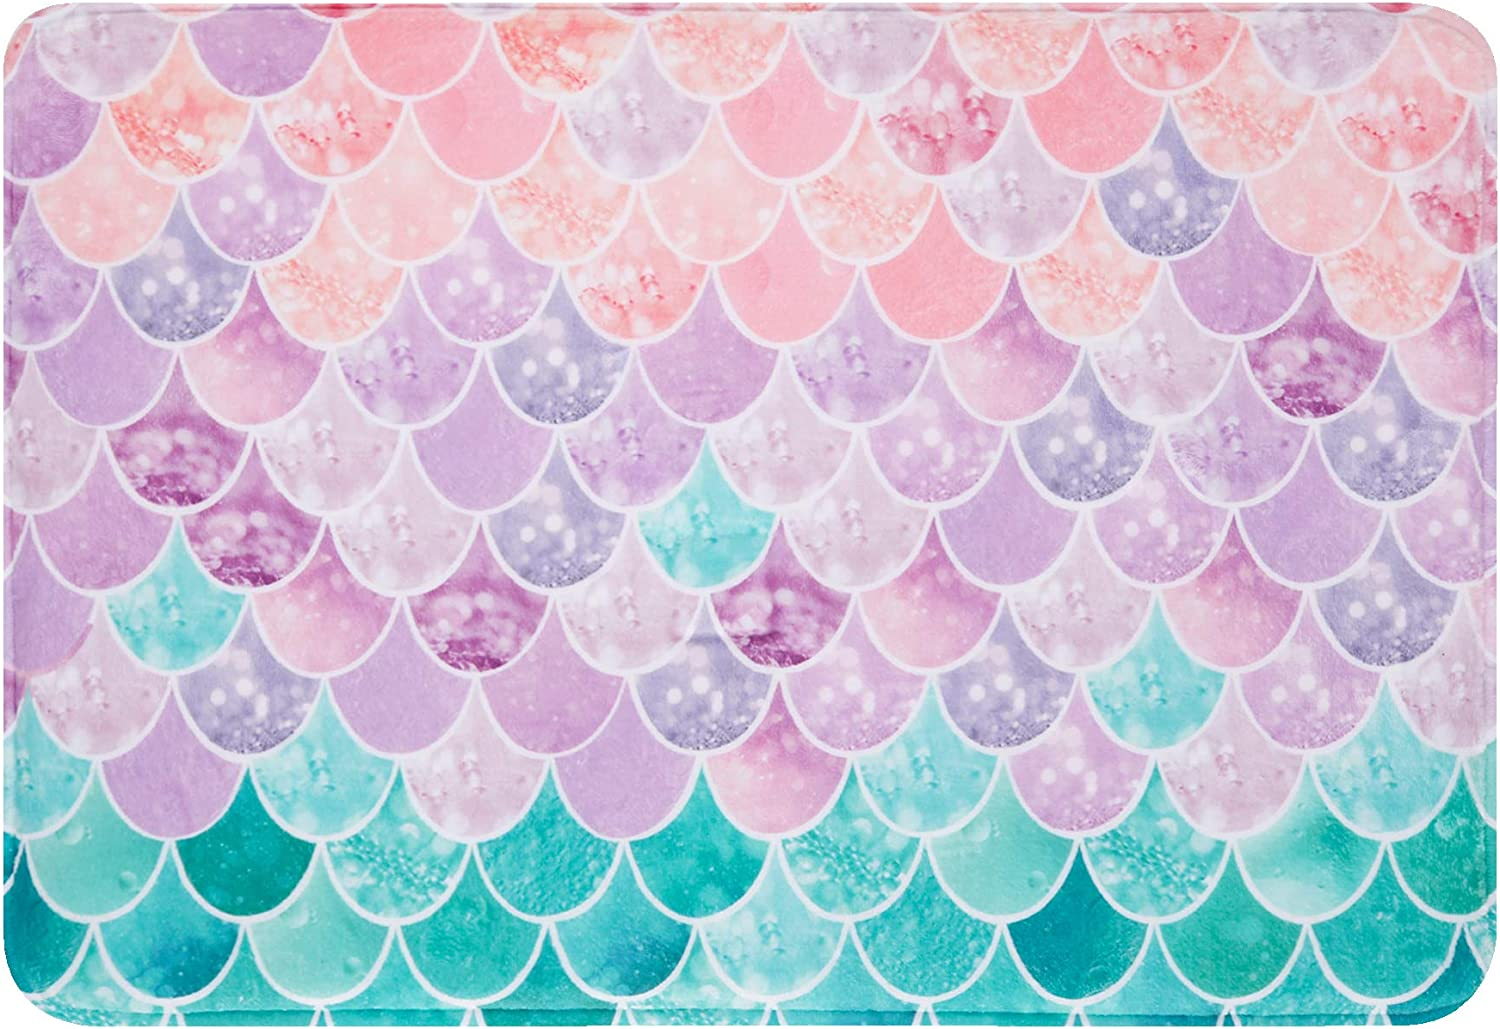 Bathroom Rug Mat, 24''X16'', Super Soft and Absorbent Shaggy Plush Bath Rugs, Thicken, Non Slip, Machine Wash and Dry,Carpet Mats for Shower, and Bath Room, Pink and Blue Fantasy Mermaid Scales